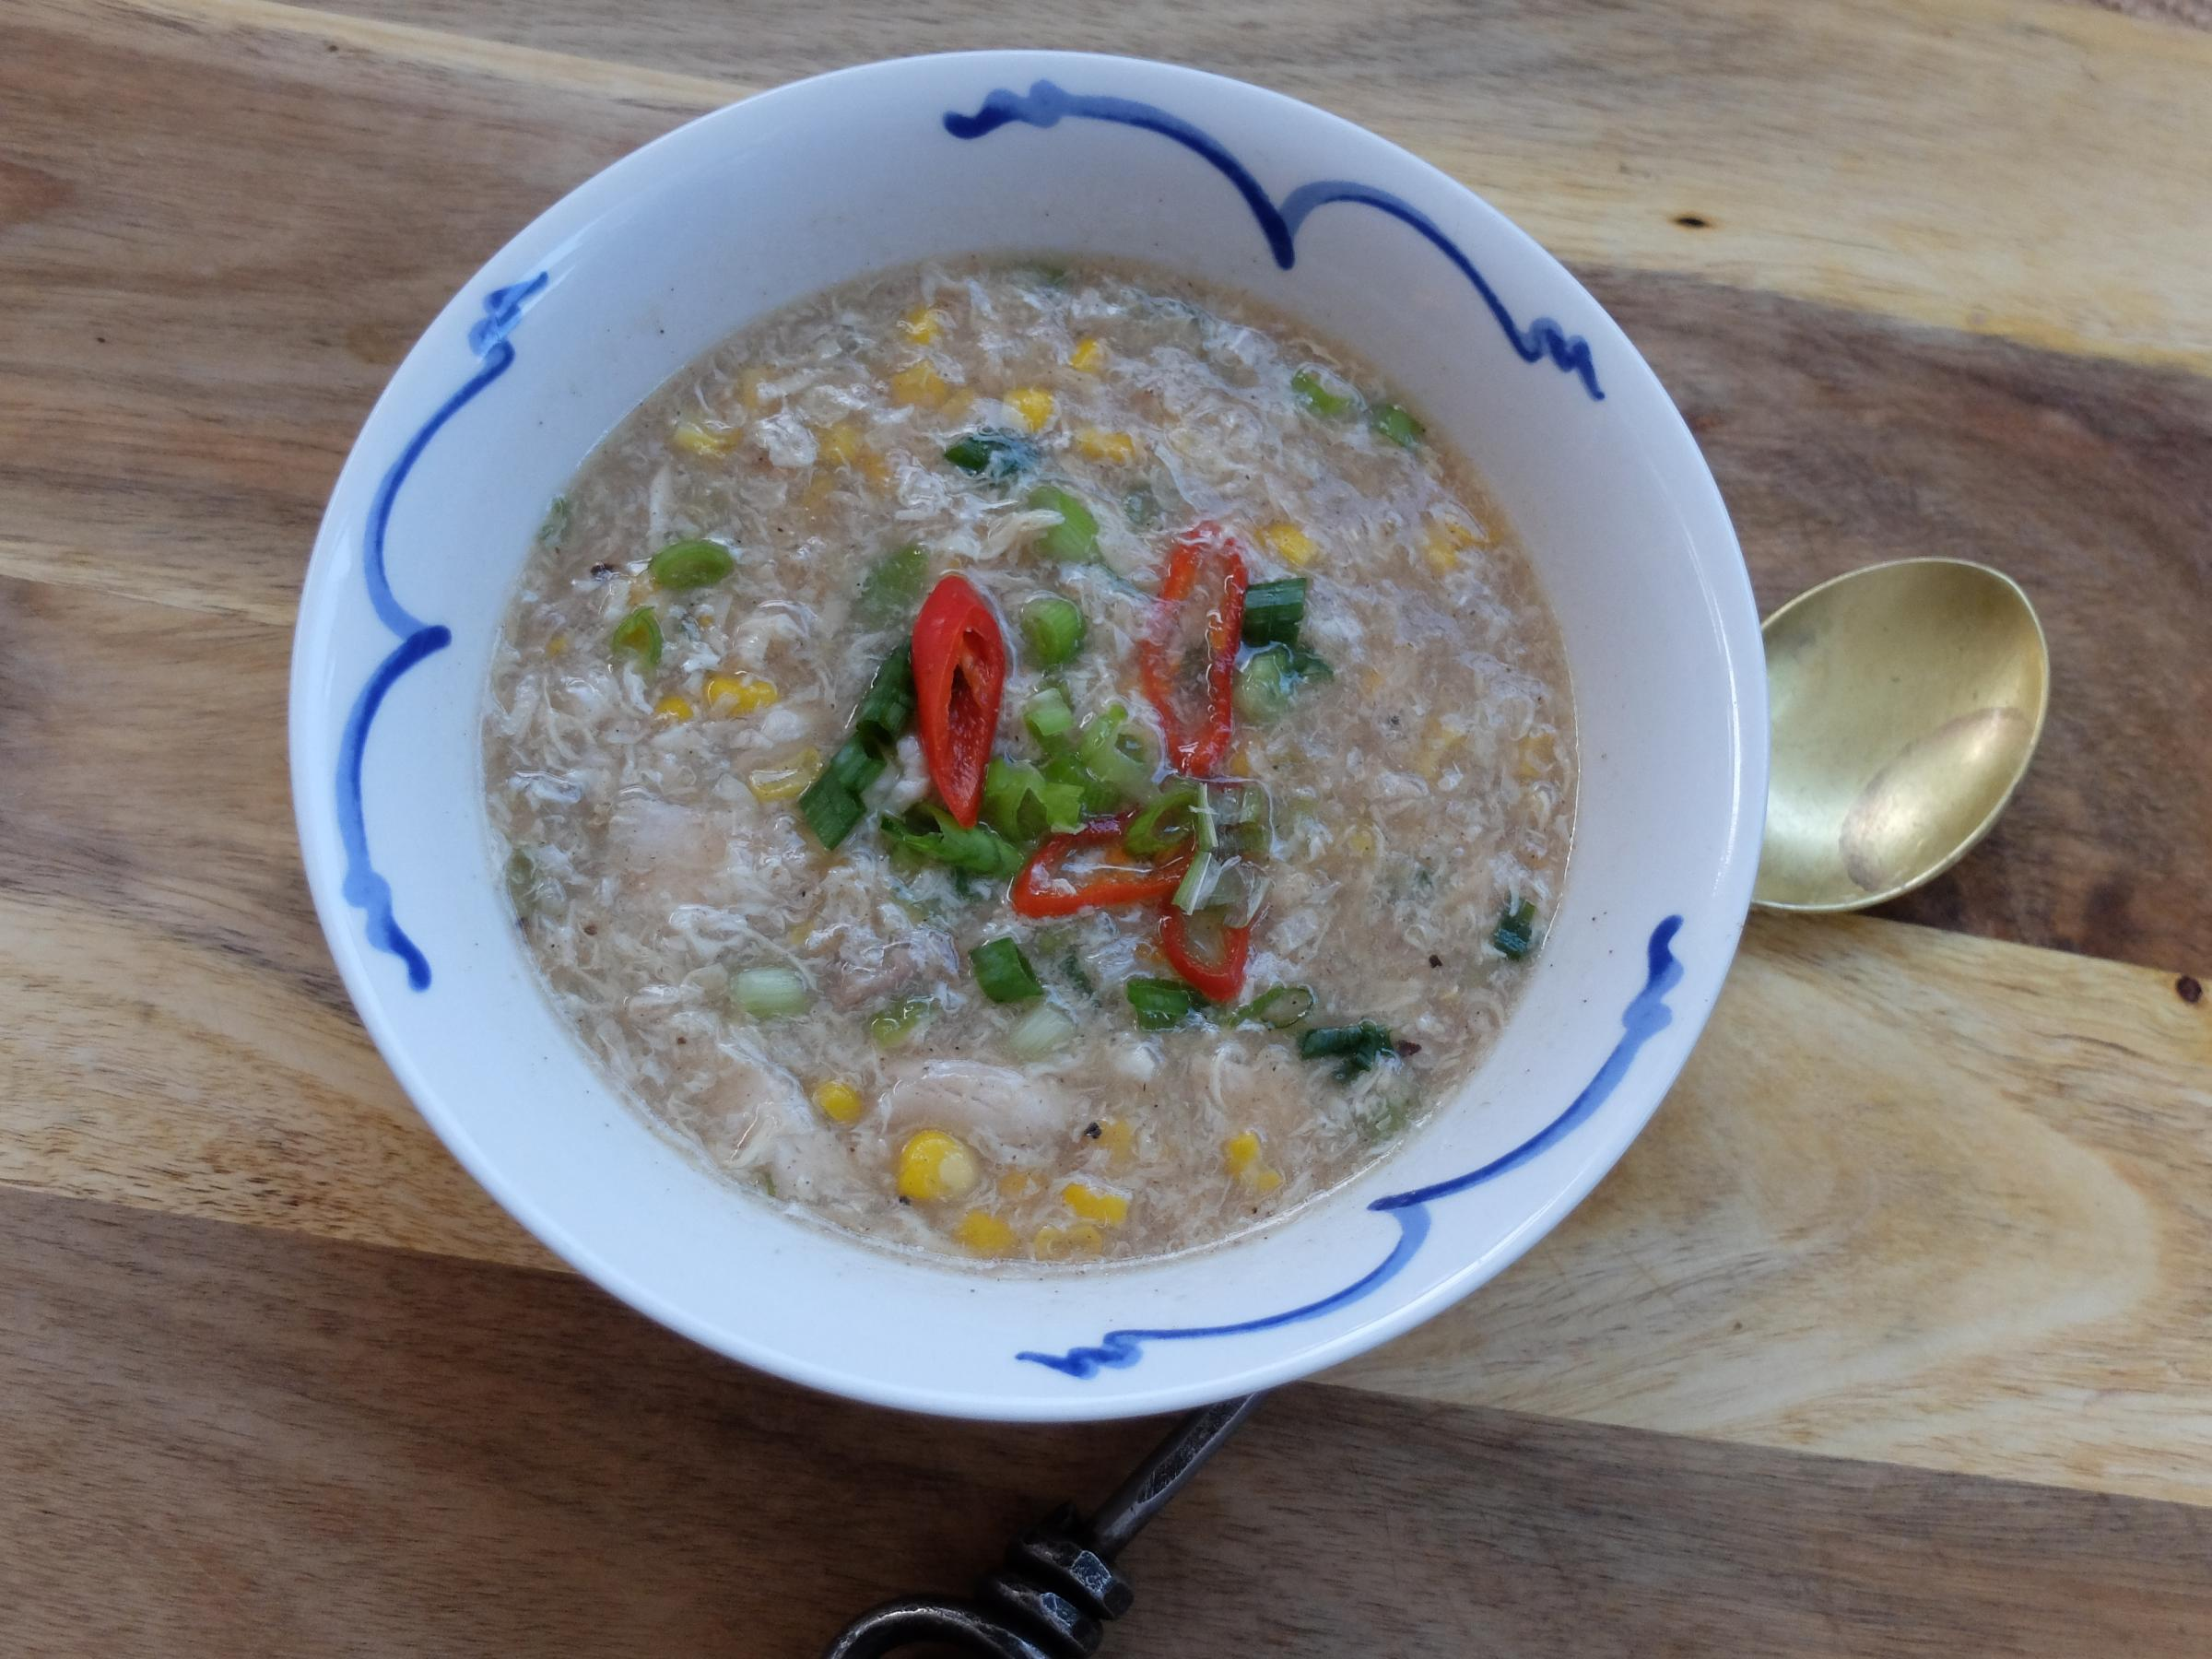 Gluten-free Chinese chicken soup by Victoria Hall